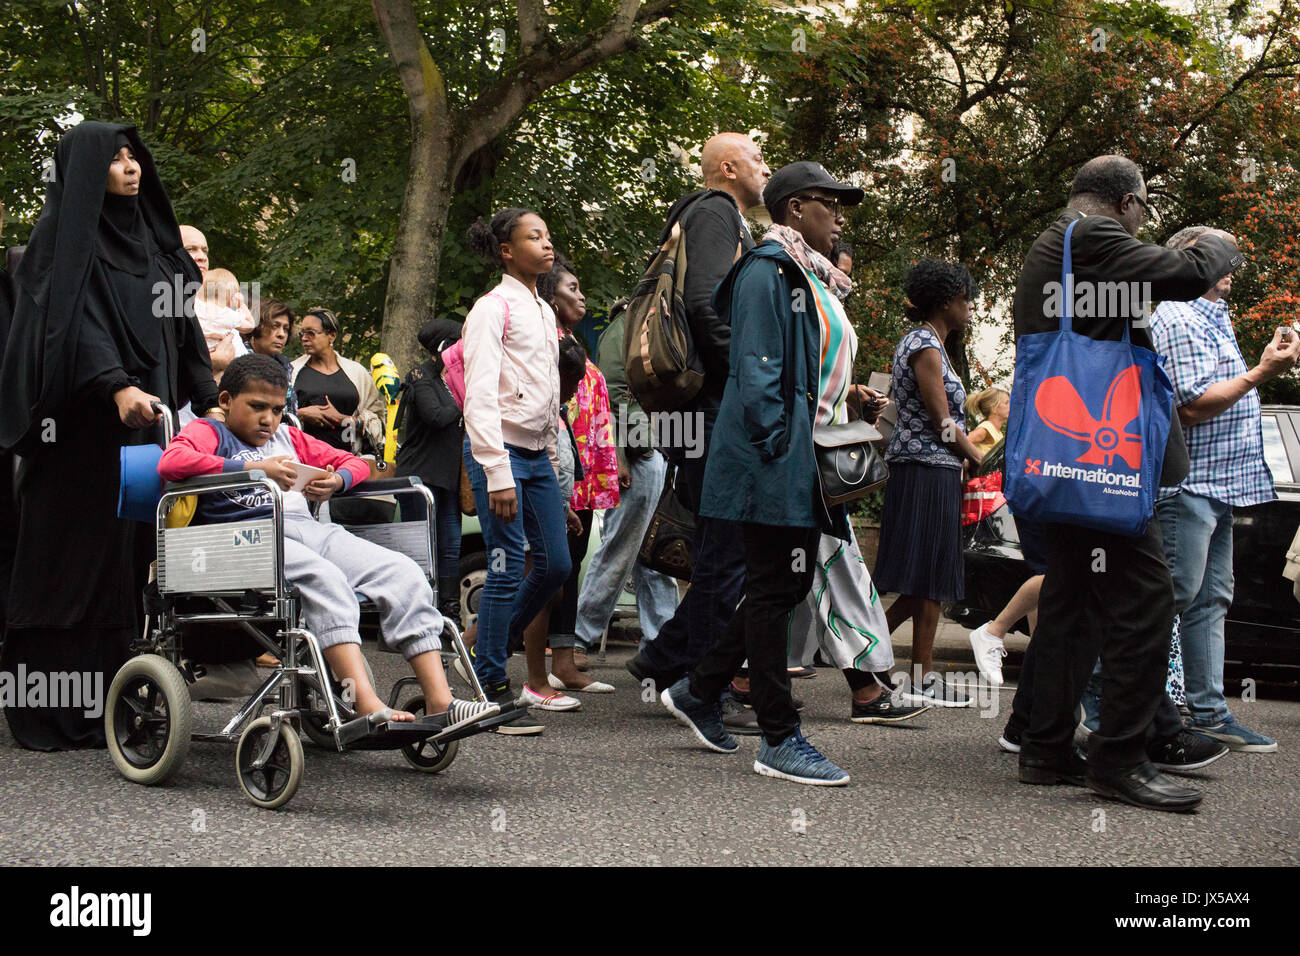 London, UK. 14th August, 2017. Hundreds of people take part in a silent march to demand justice for the victims Stock Photo